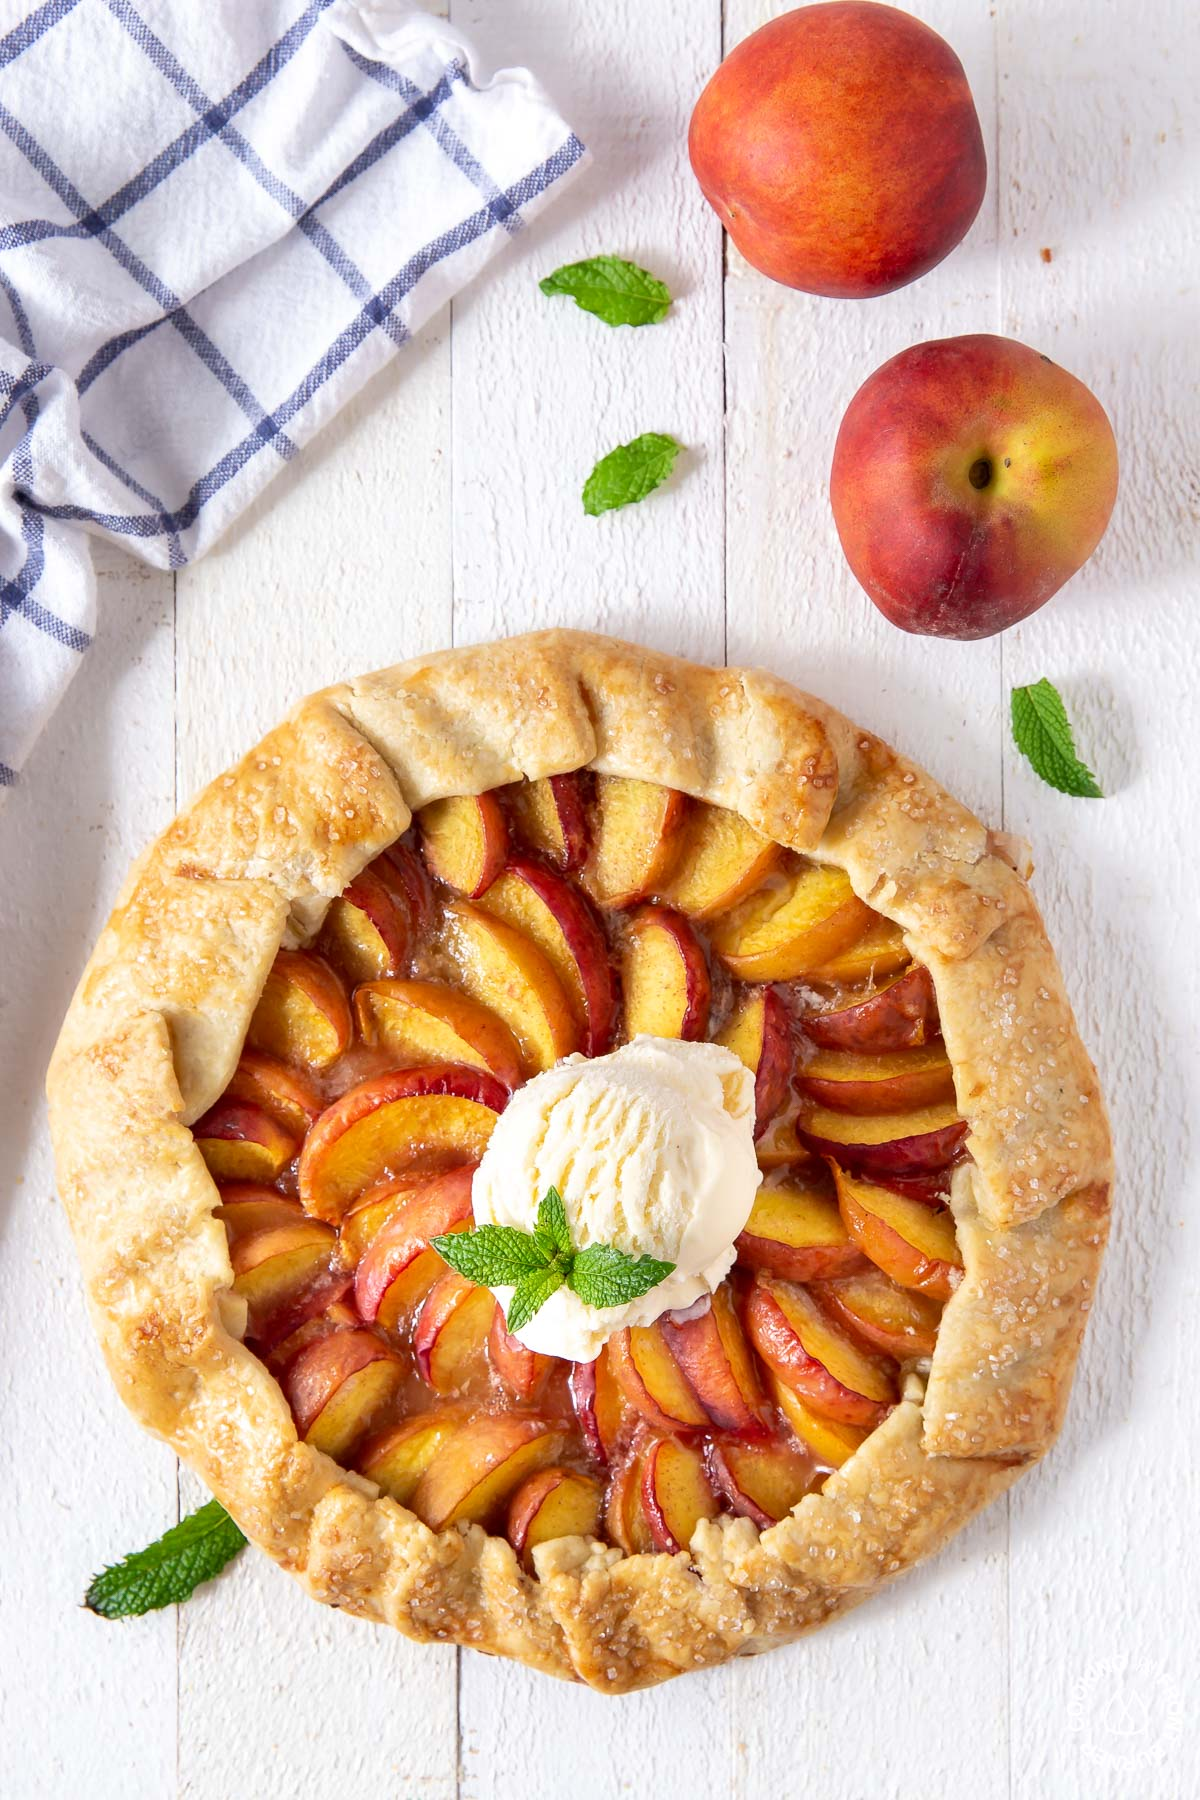 baked peach galette with vanilla ice cream on top